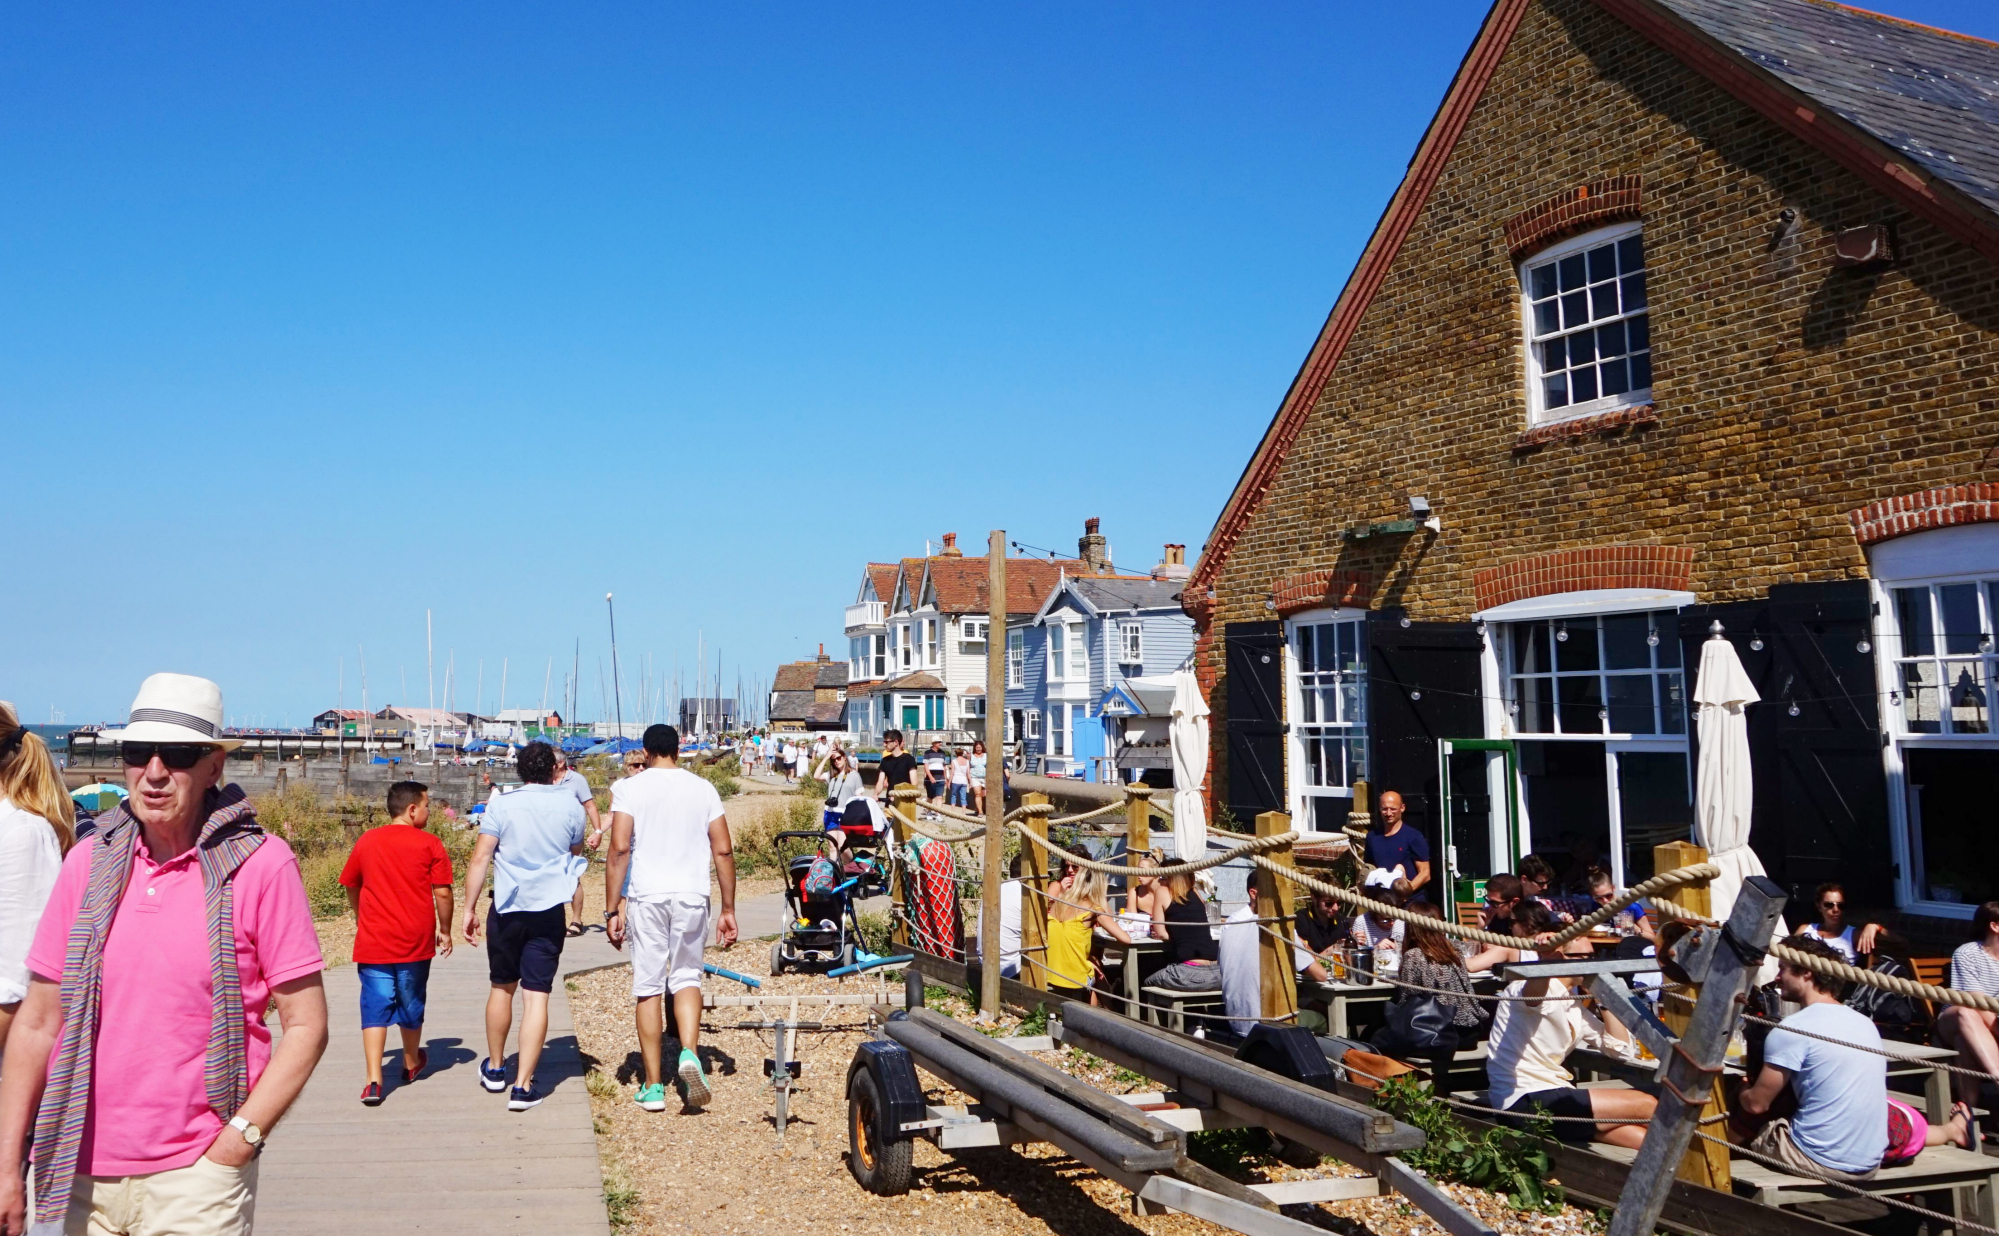 Whitstable-13